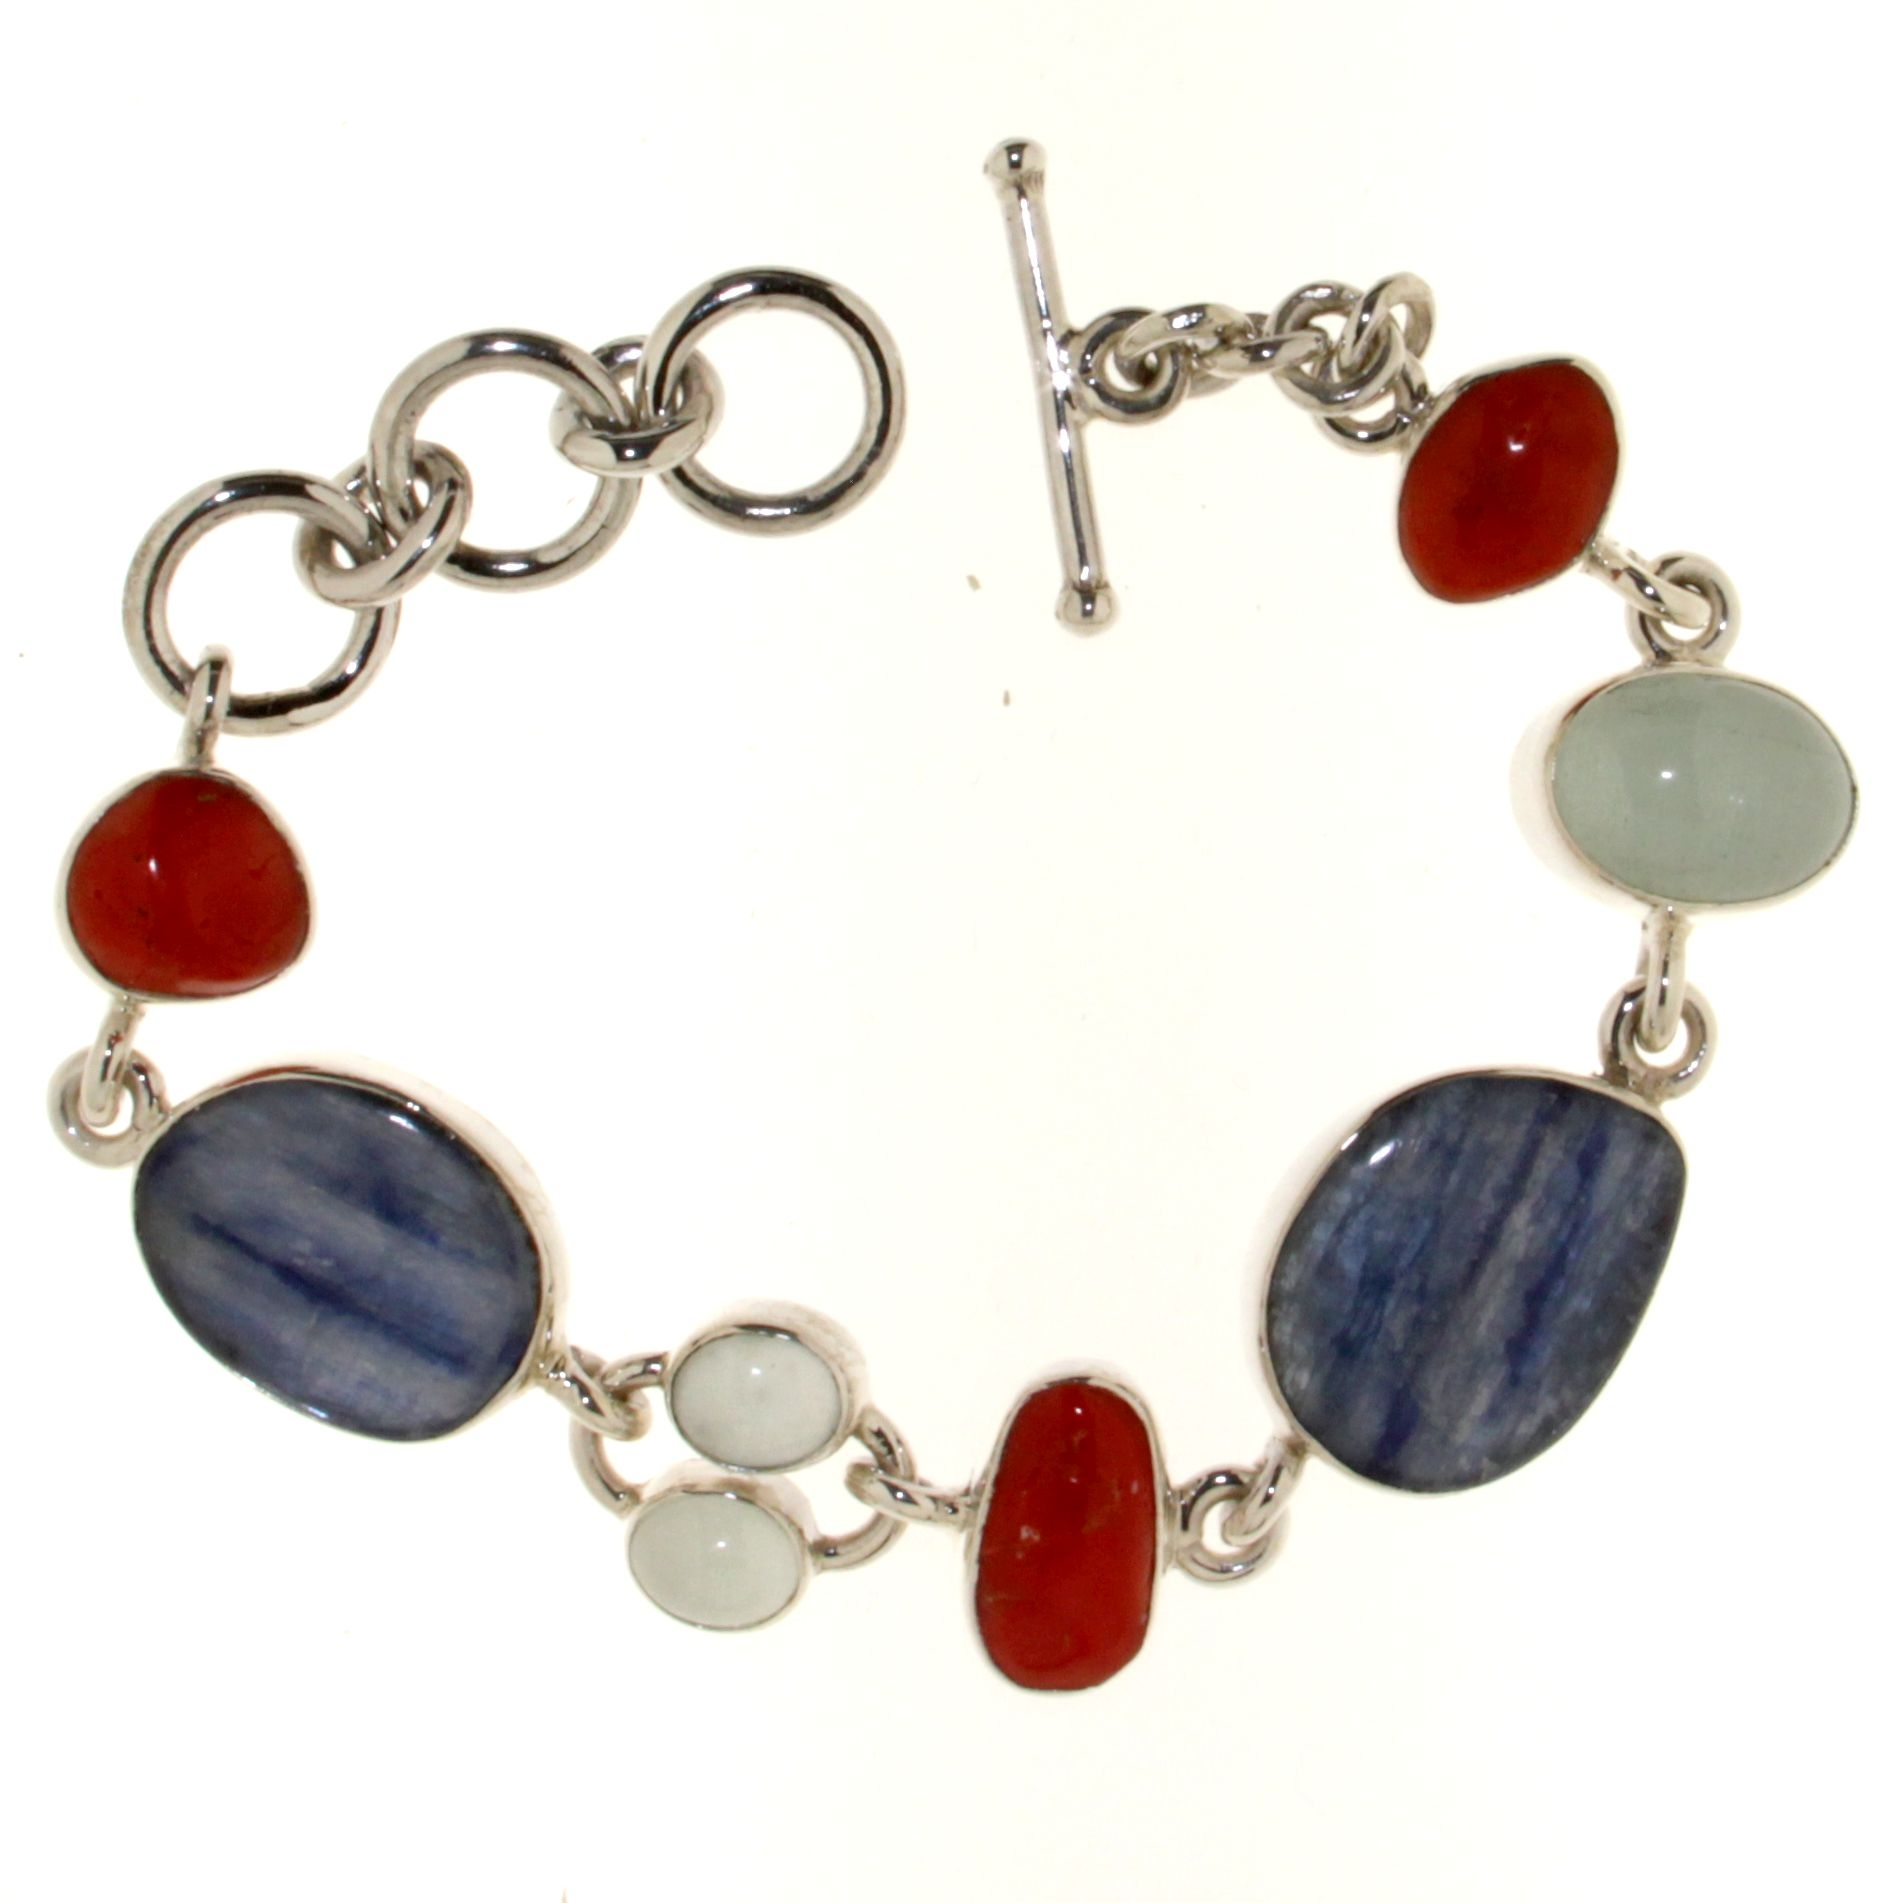 Bracelet with Red Coral of the Mediterranean Sea,